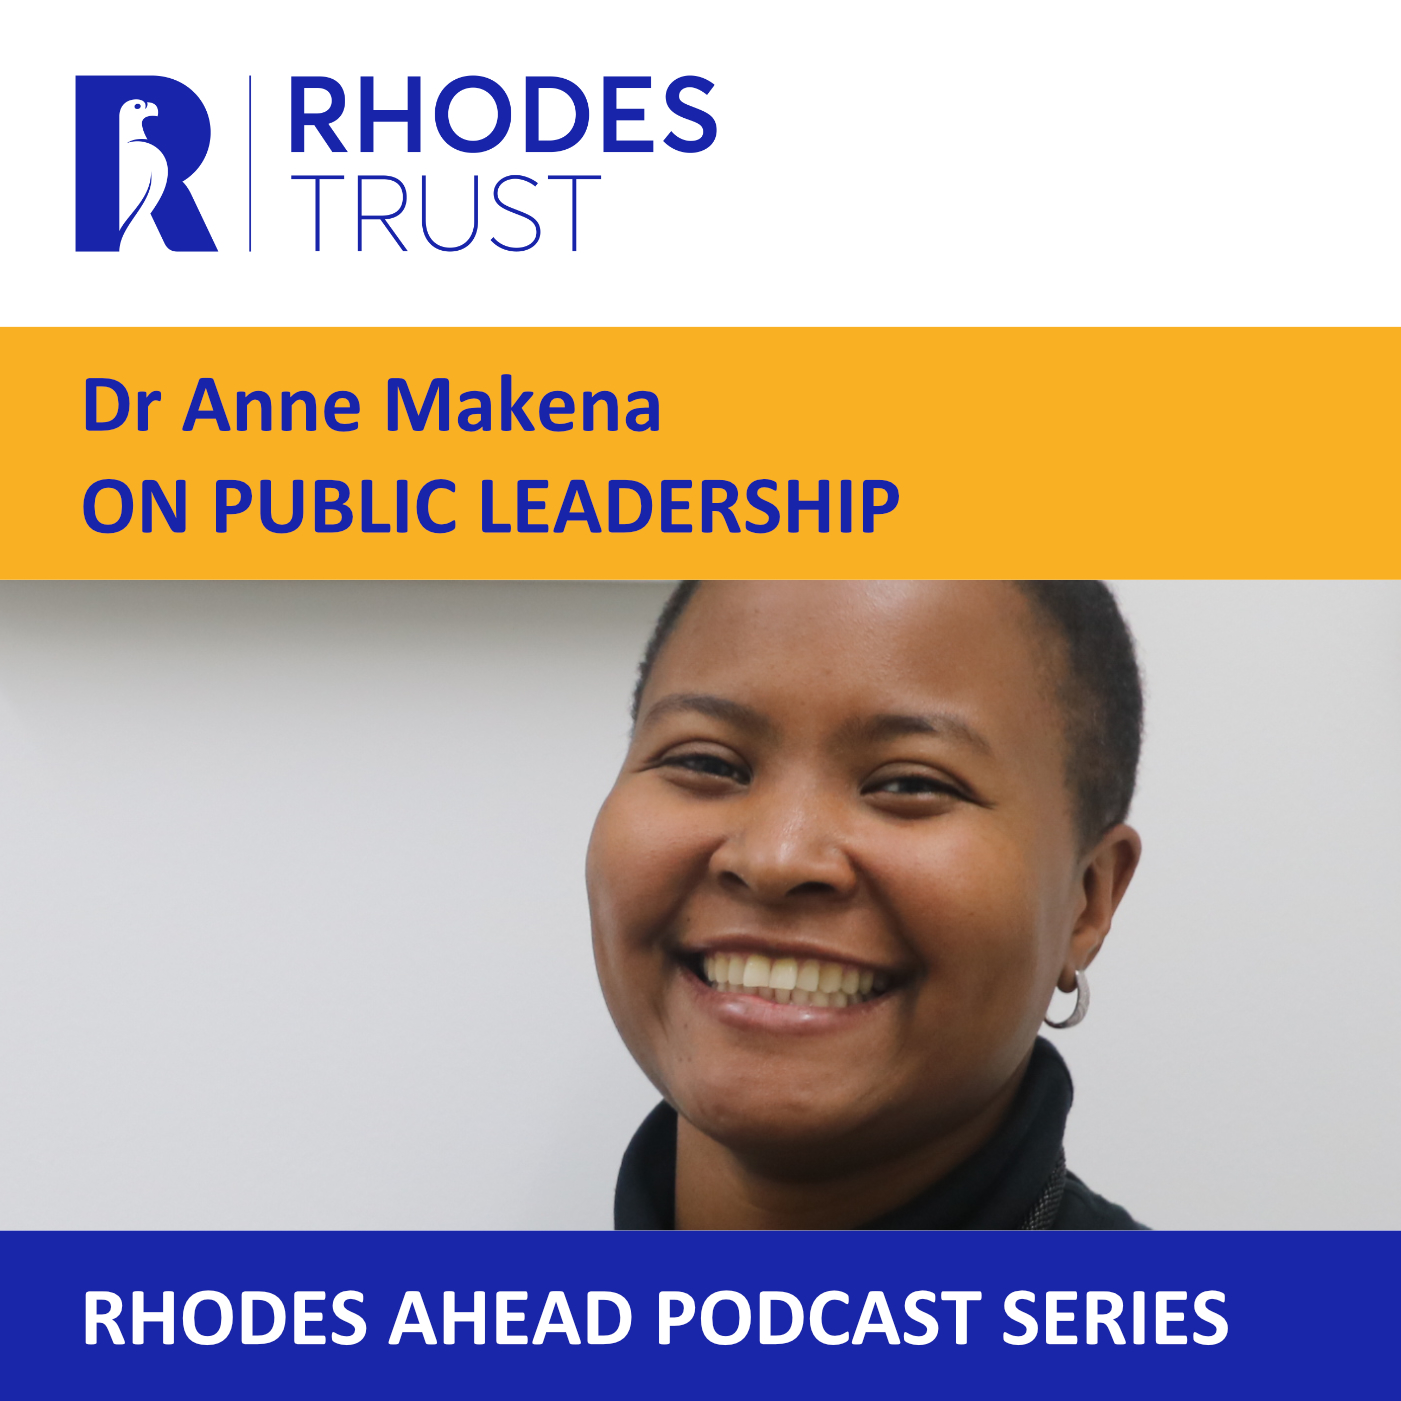 Dr Anne Makena on Public Leadership